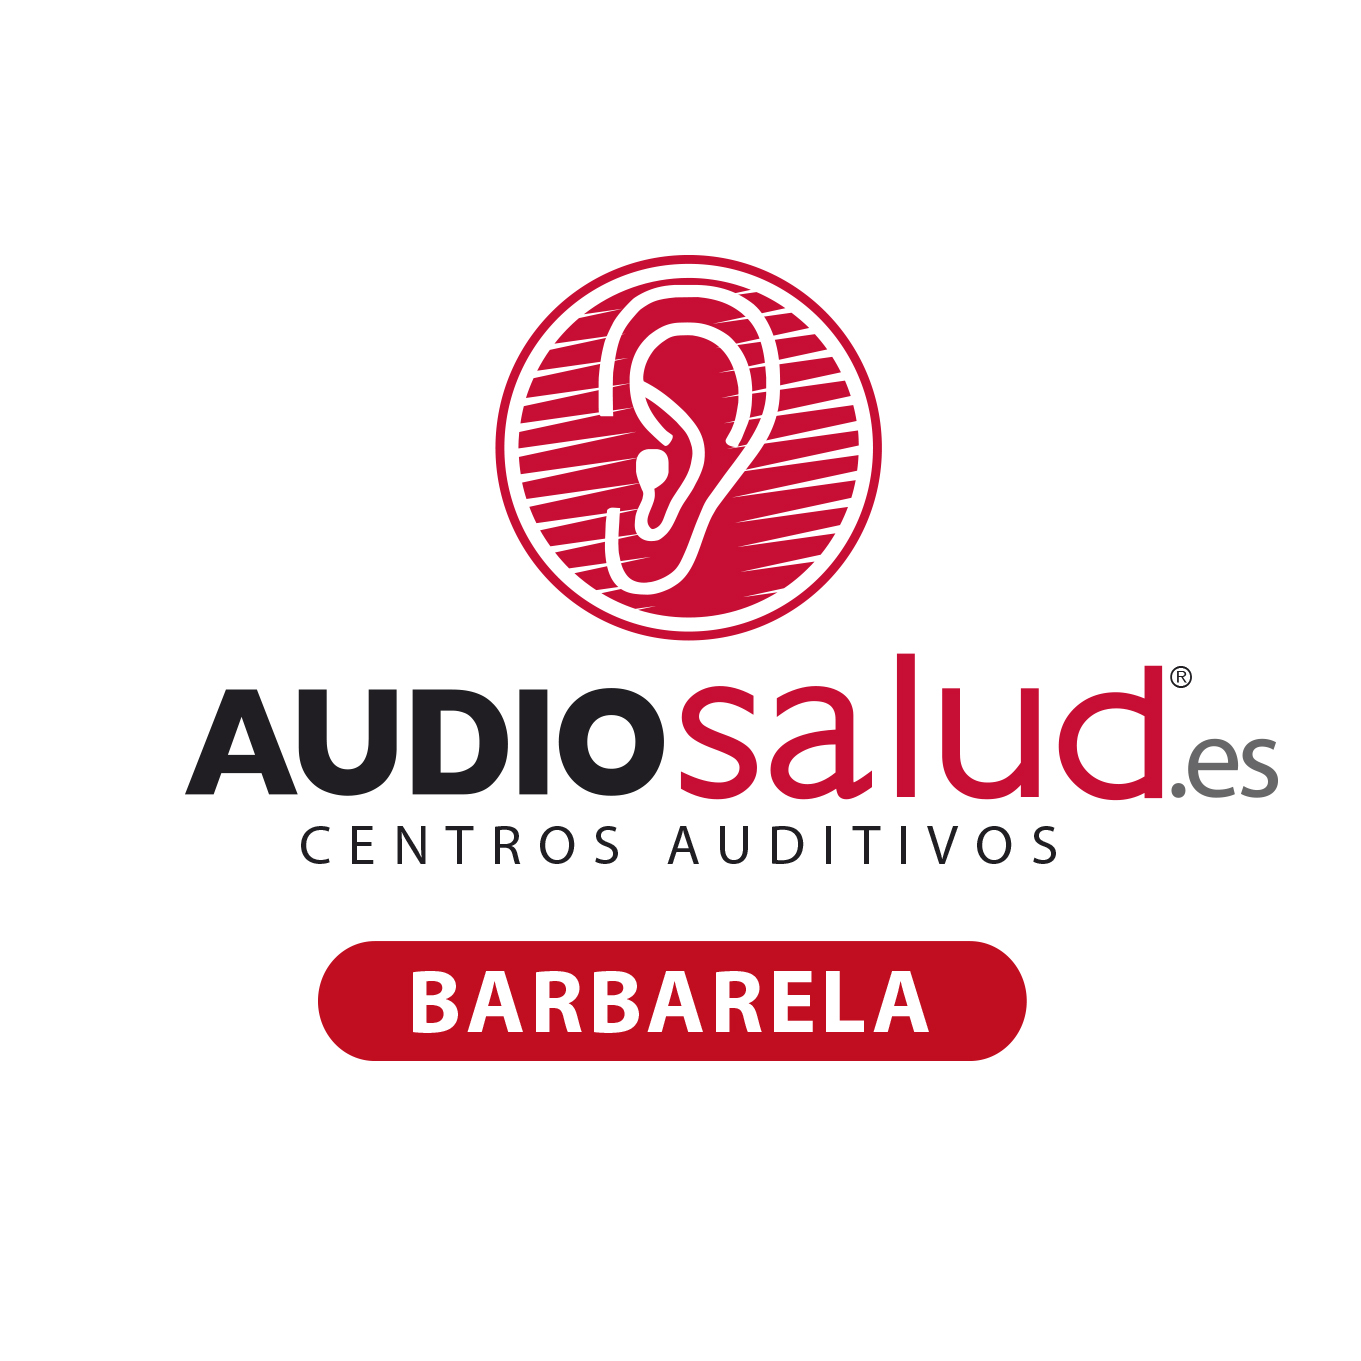 Audiosalud Barbarela - Centro Auditivo